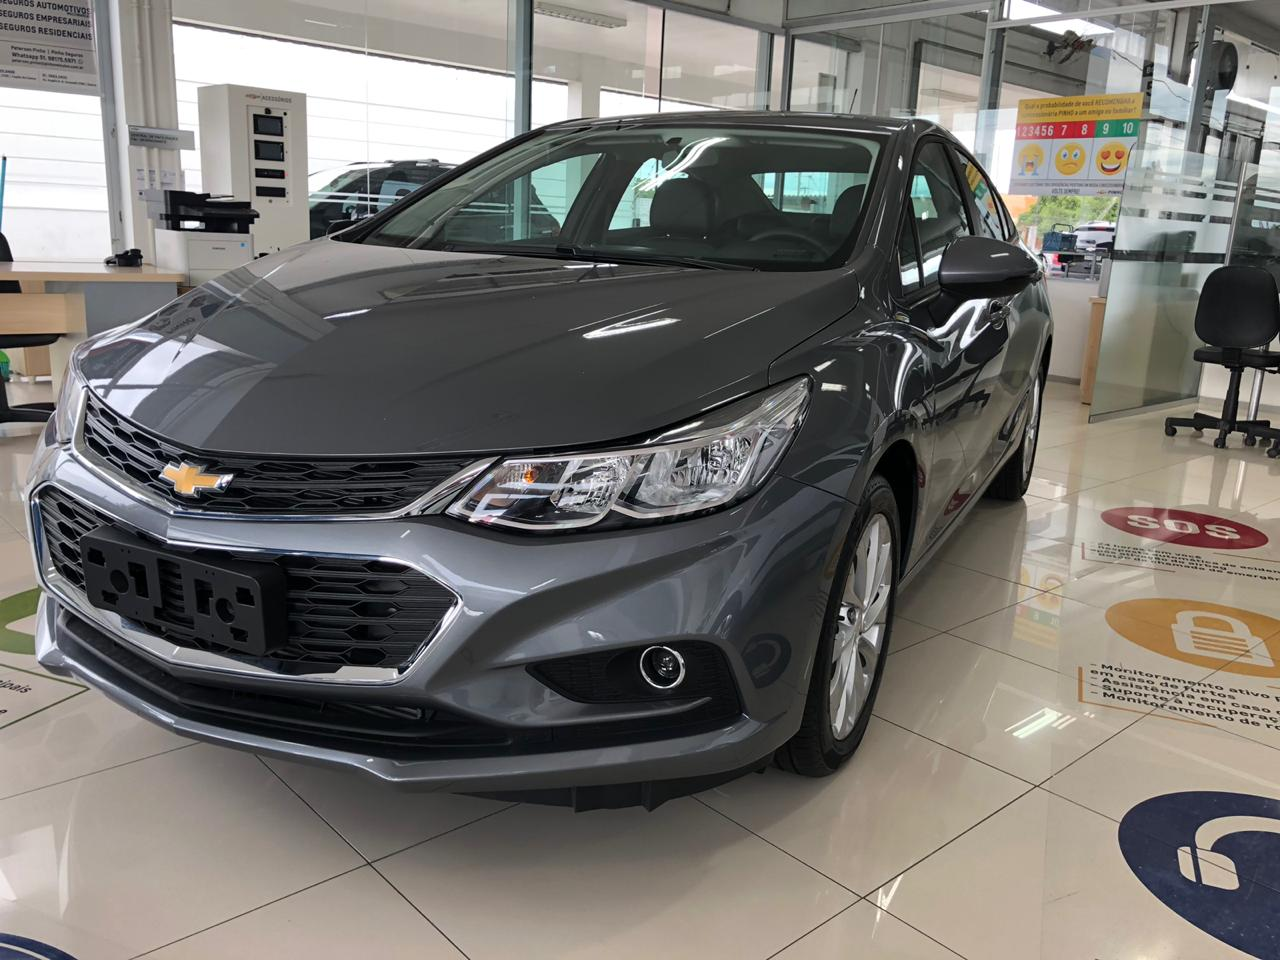 CHEVROLET CRUZE SEDAN LT 1.4 TURBO 2019